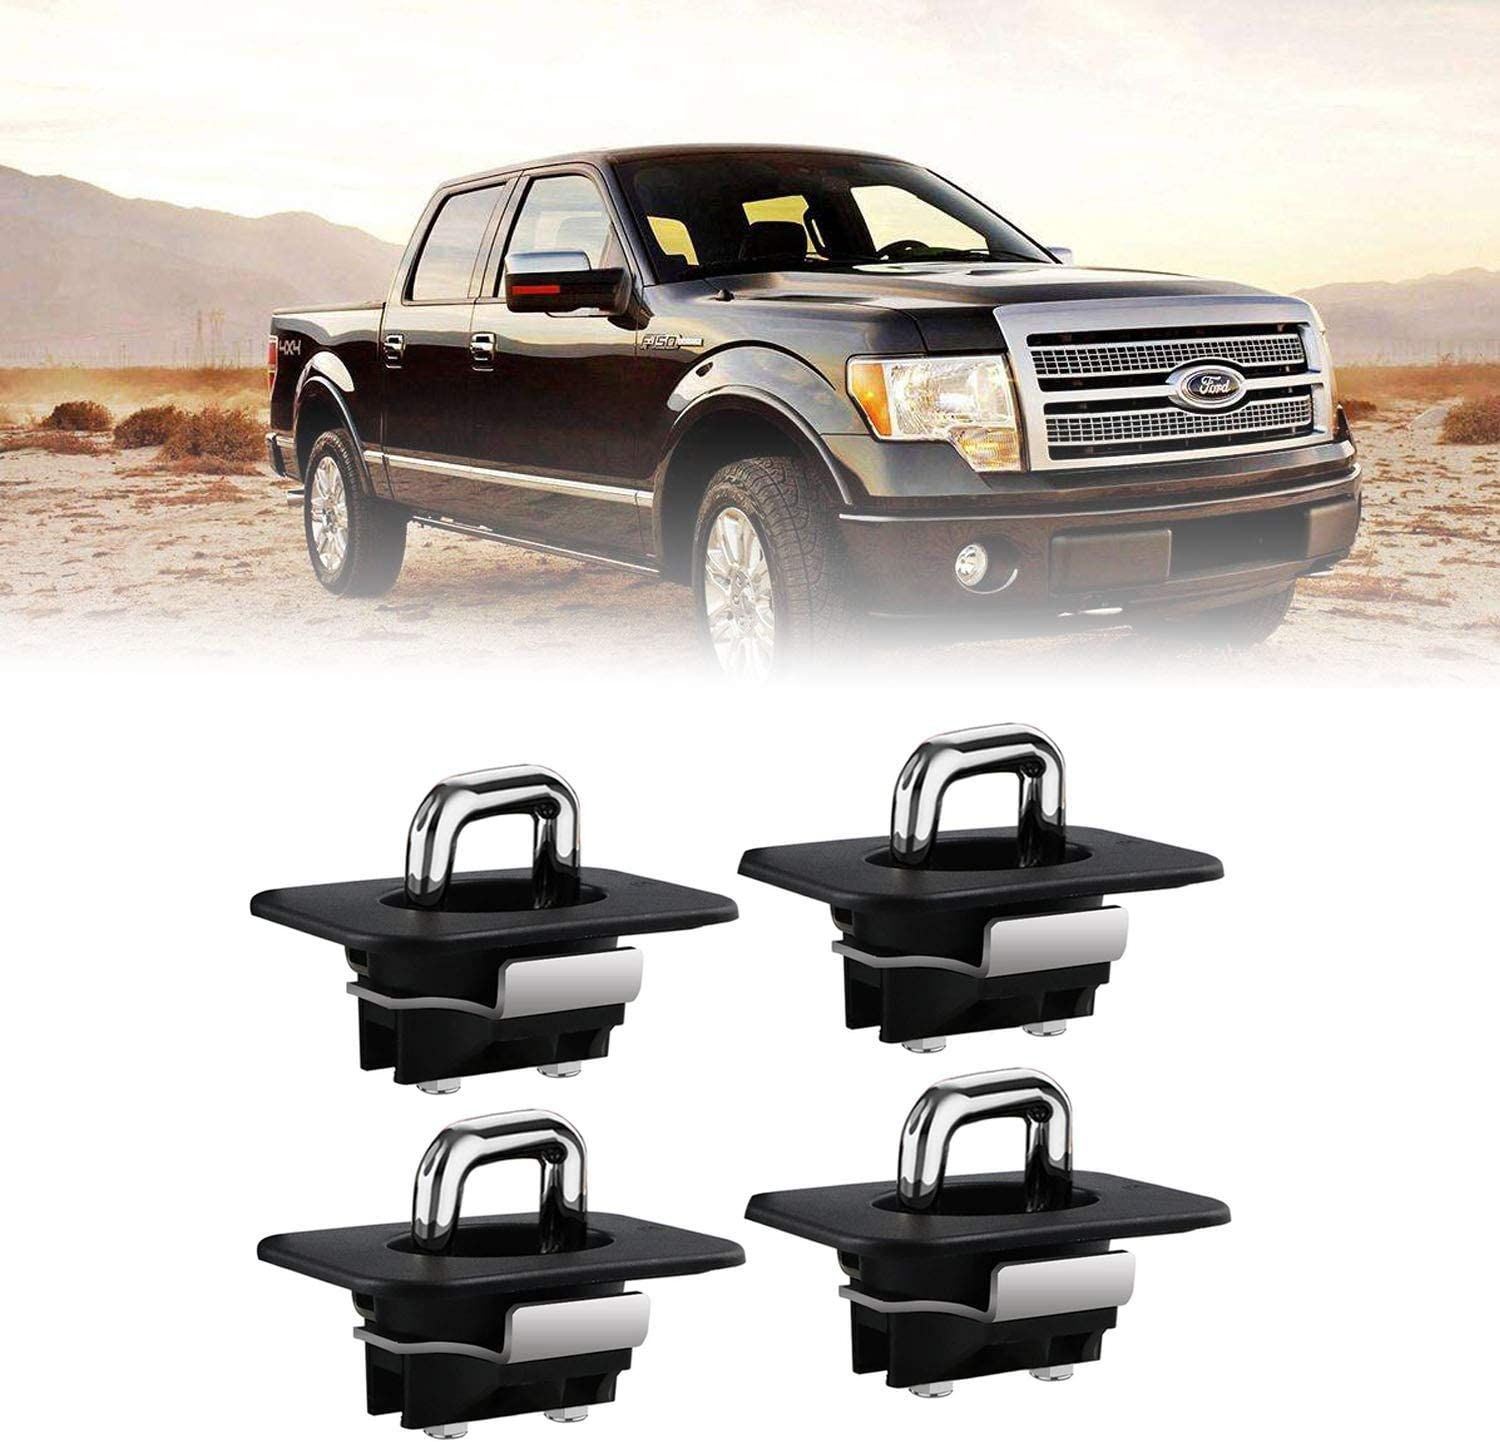 Cheap super special price Dibanyou 4pcs 4001-XT Tie Down Anchors Bed Truck Side Wall Ancho famous